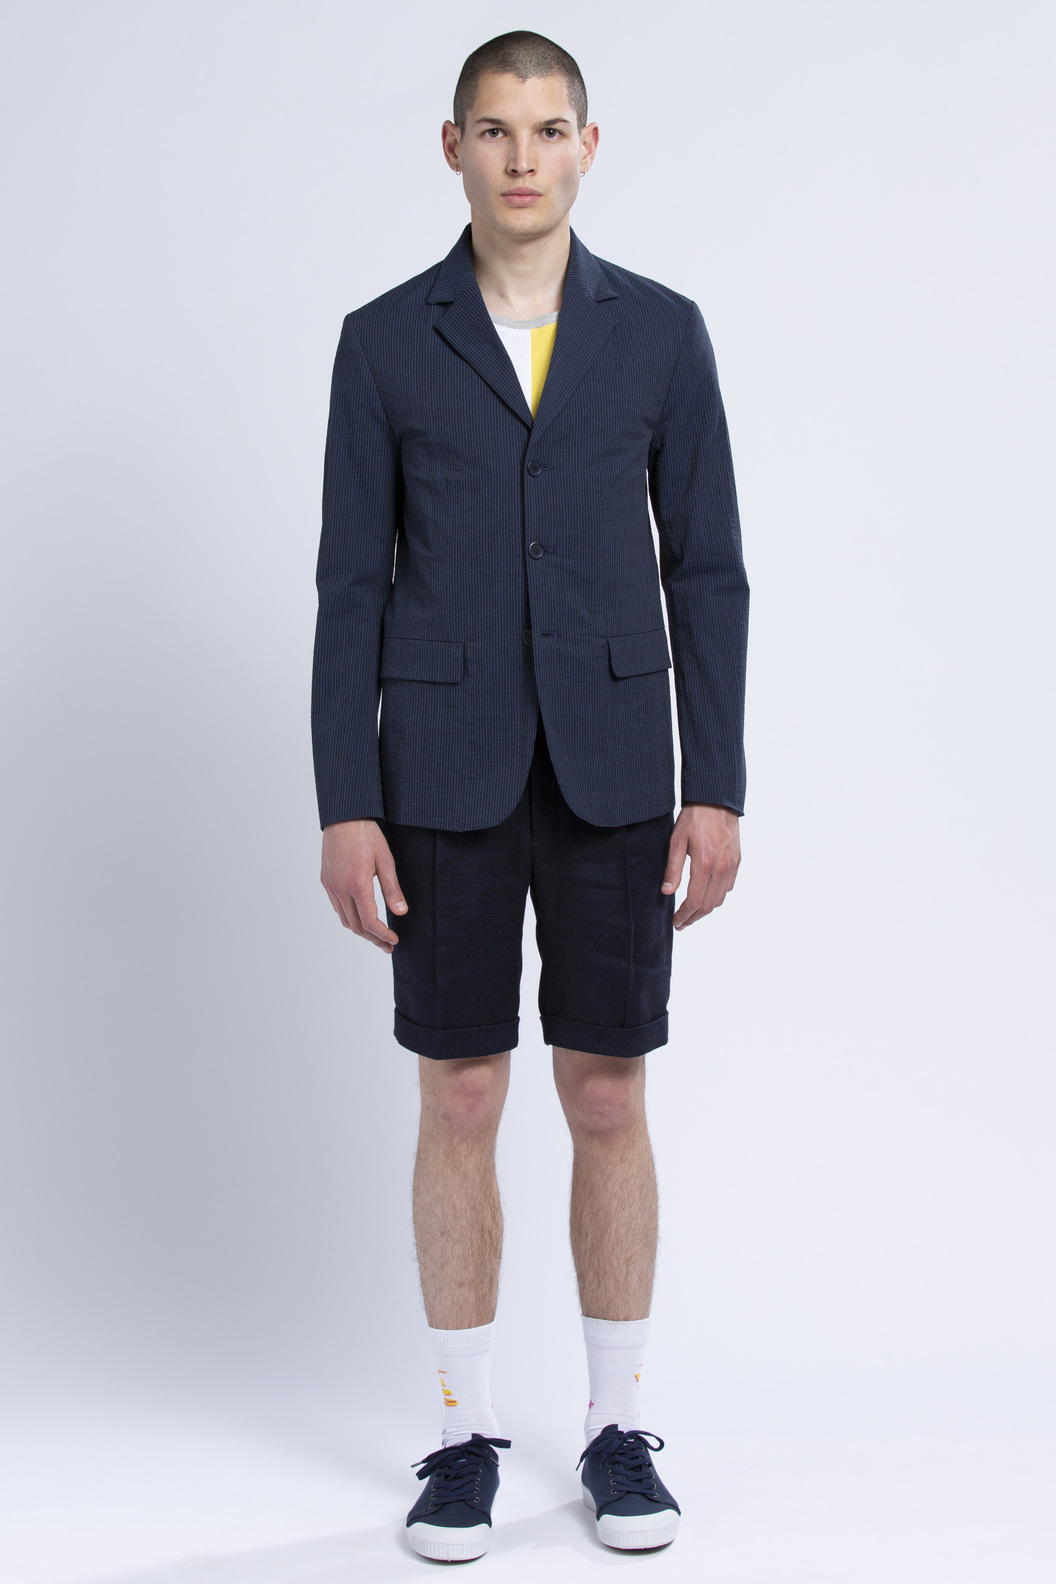 SUIT JACKET PROTOT - Navy stripes